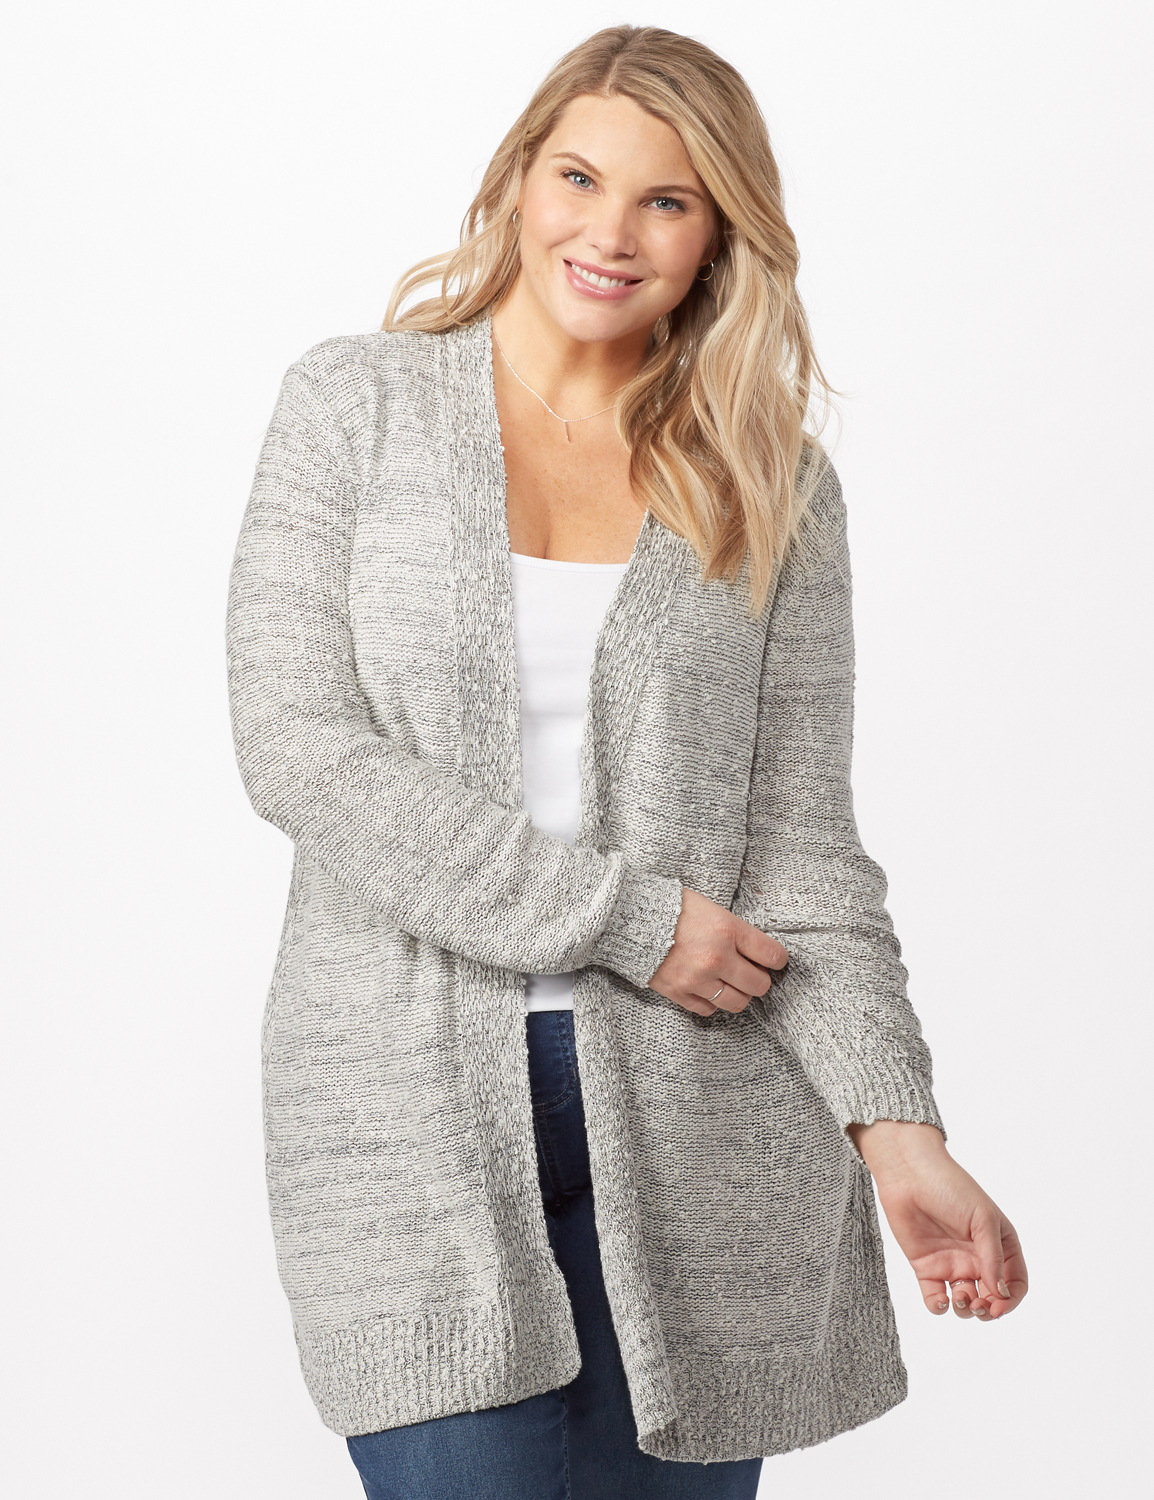 Textured Cardigan with Pointelle Detail -Ivory/black - Front